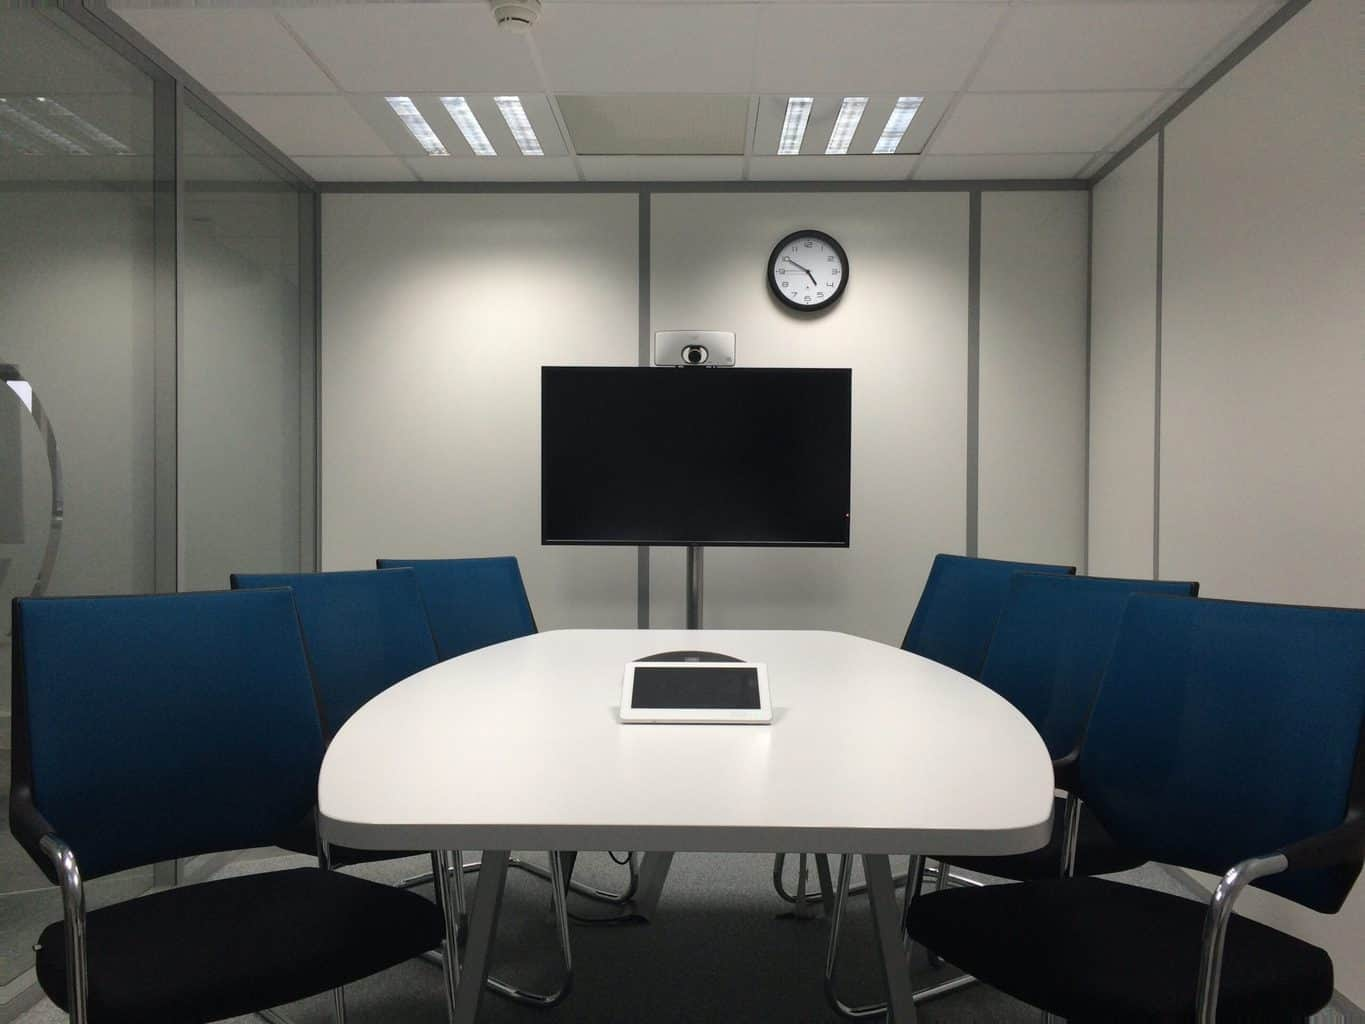 A conference room with chairs and a mounted tv